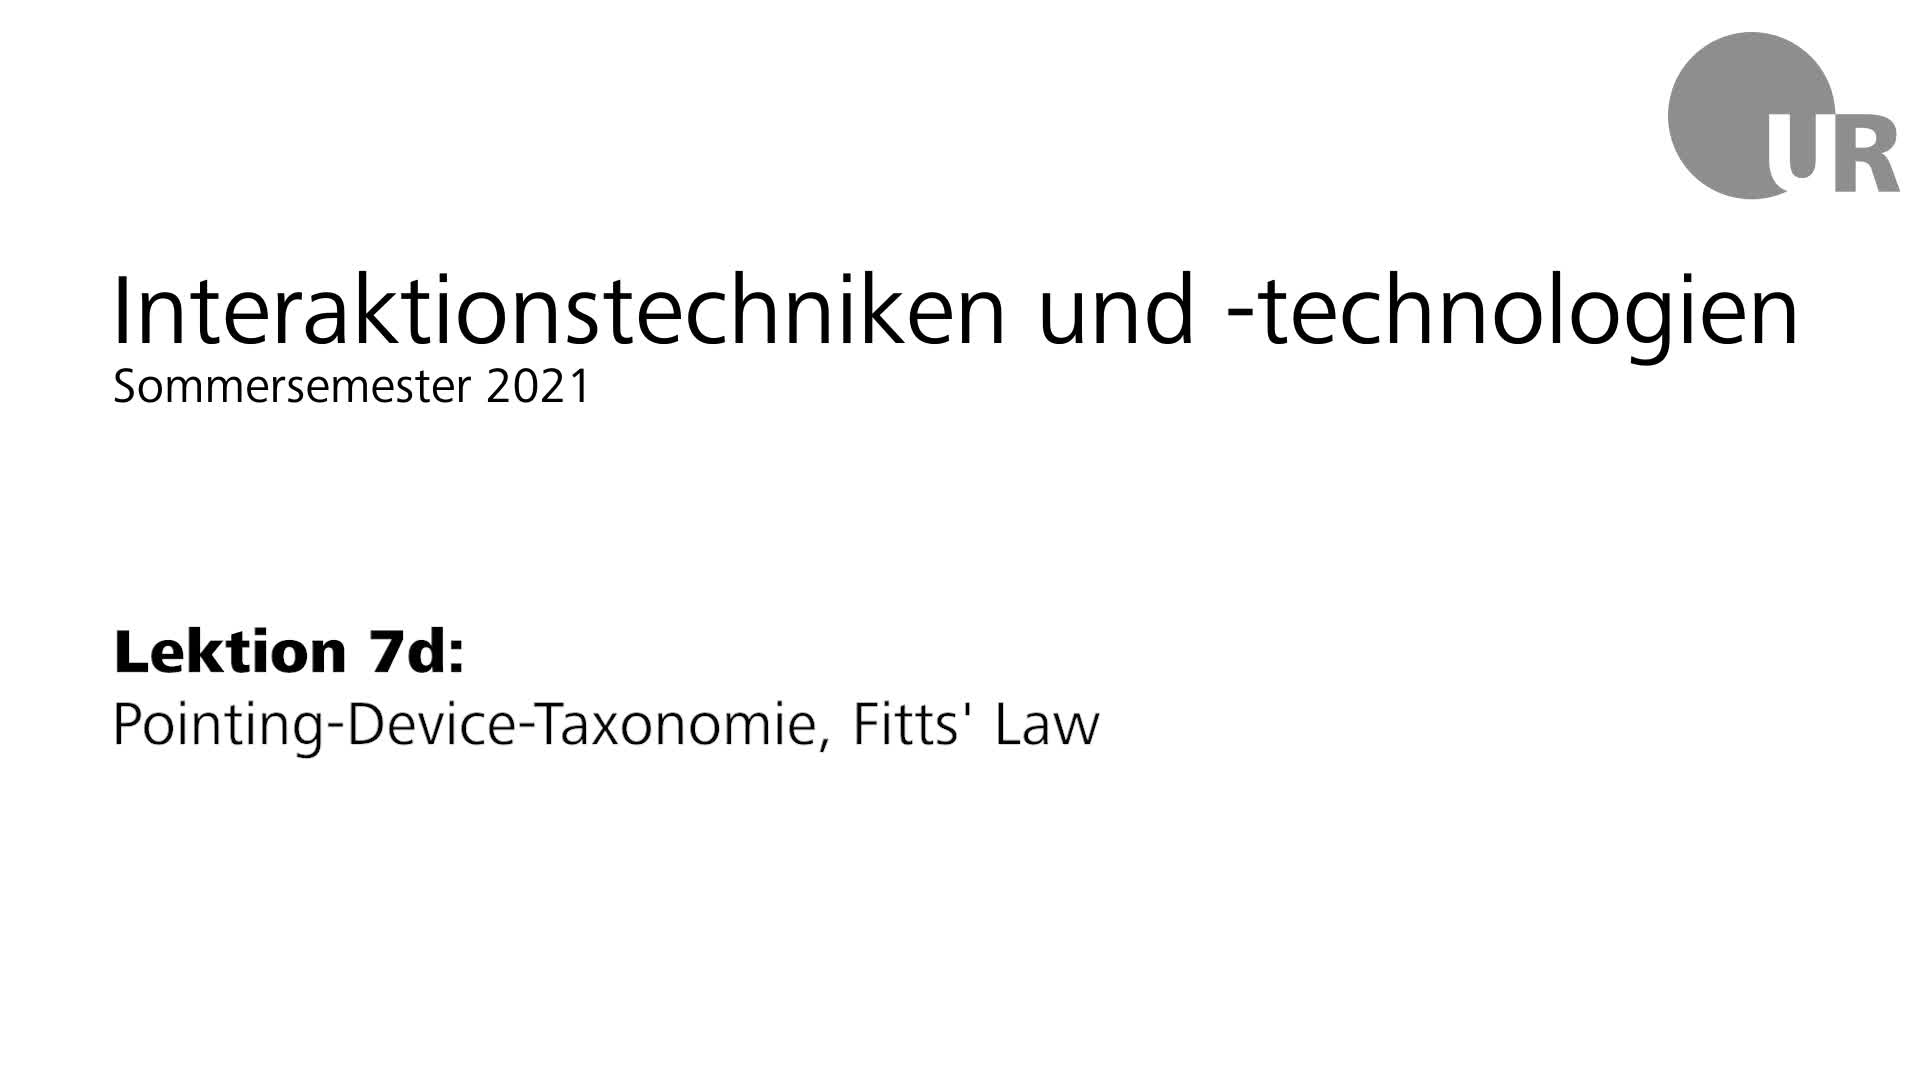 Lektion 7d: Pointing-Device-Taxonomie, Fitts' Law